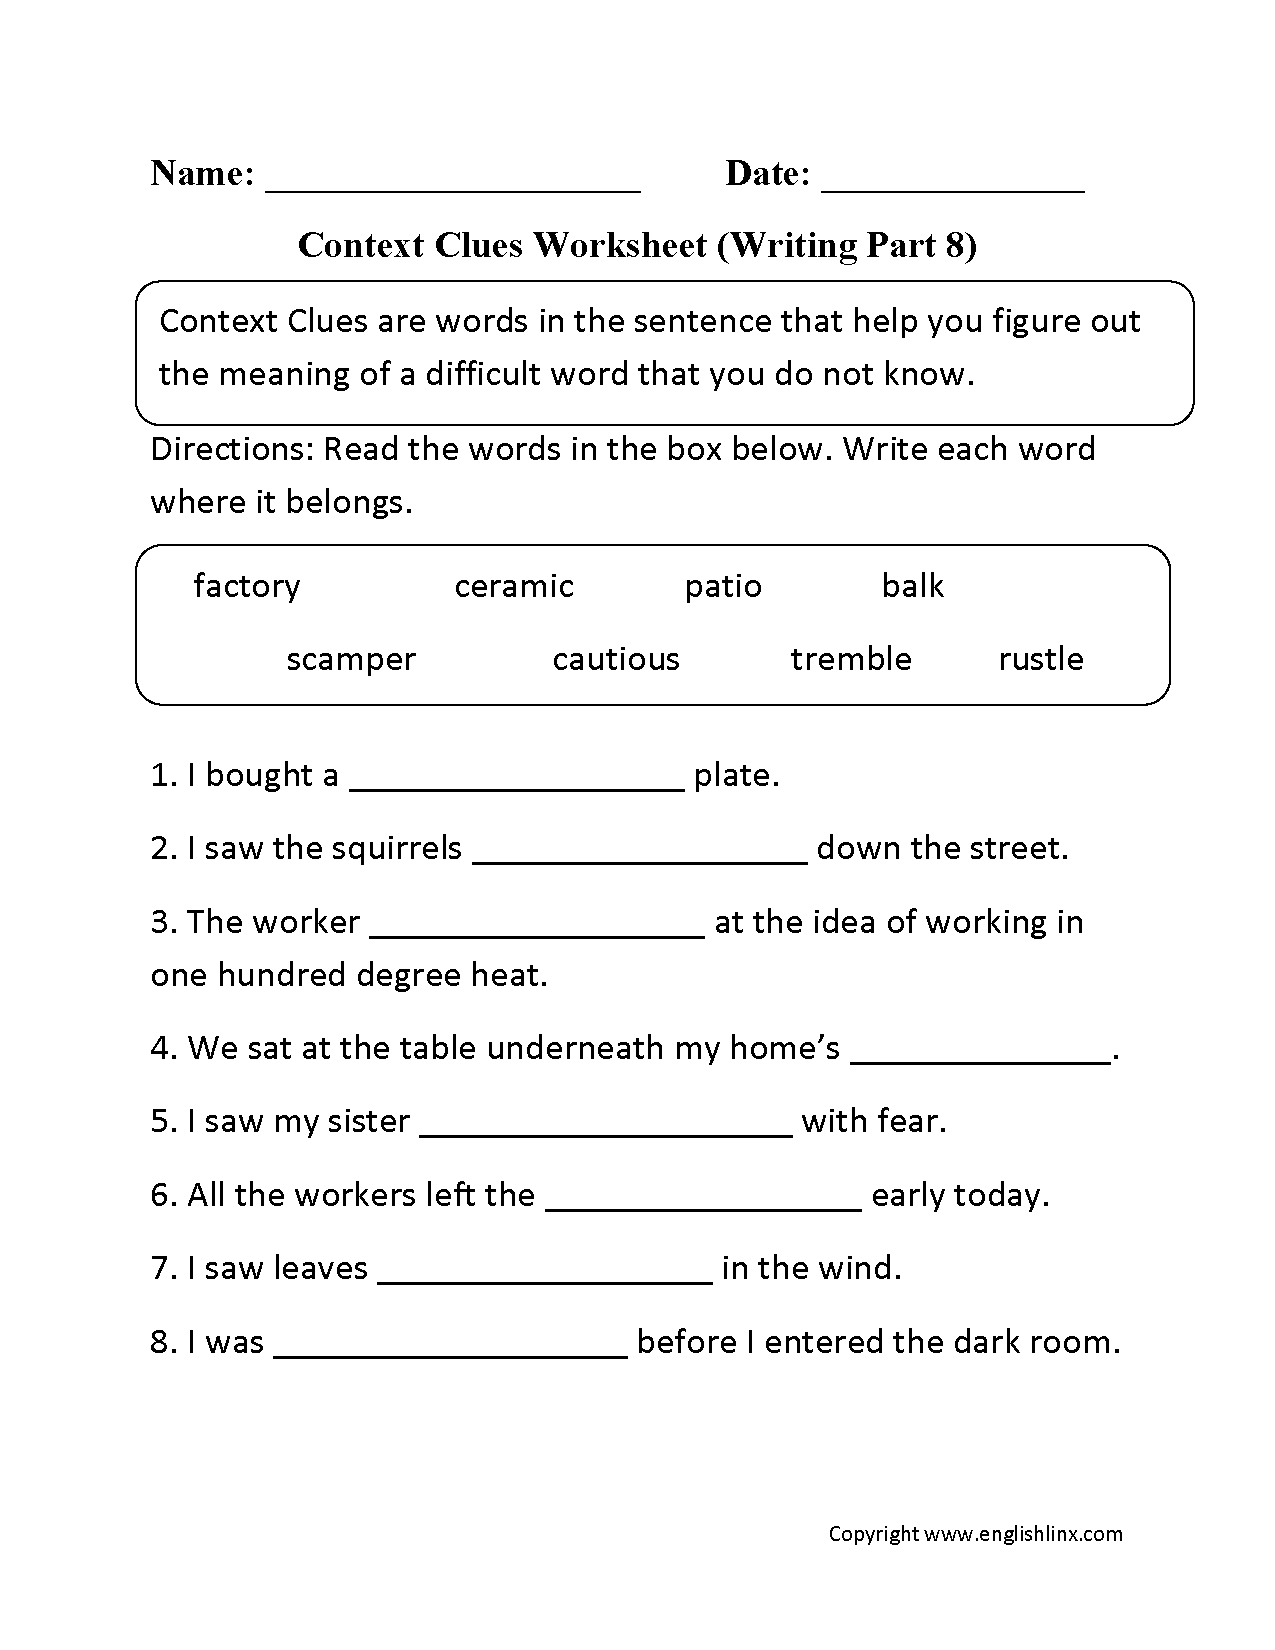 Context Clues Warm Ups Printable Worksheets From Englishlinx